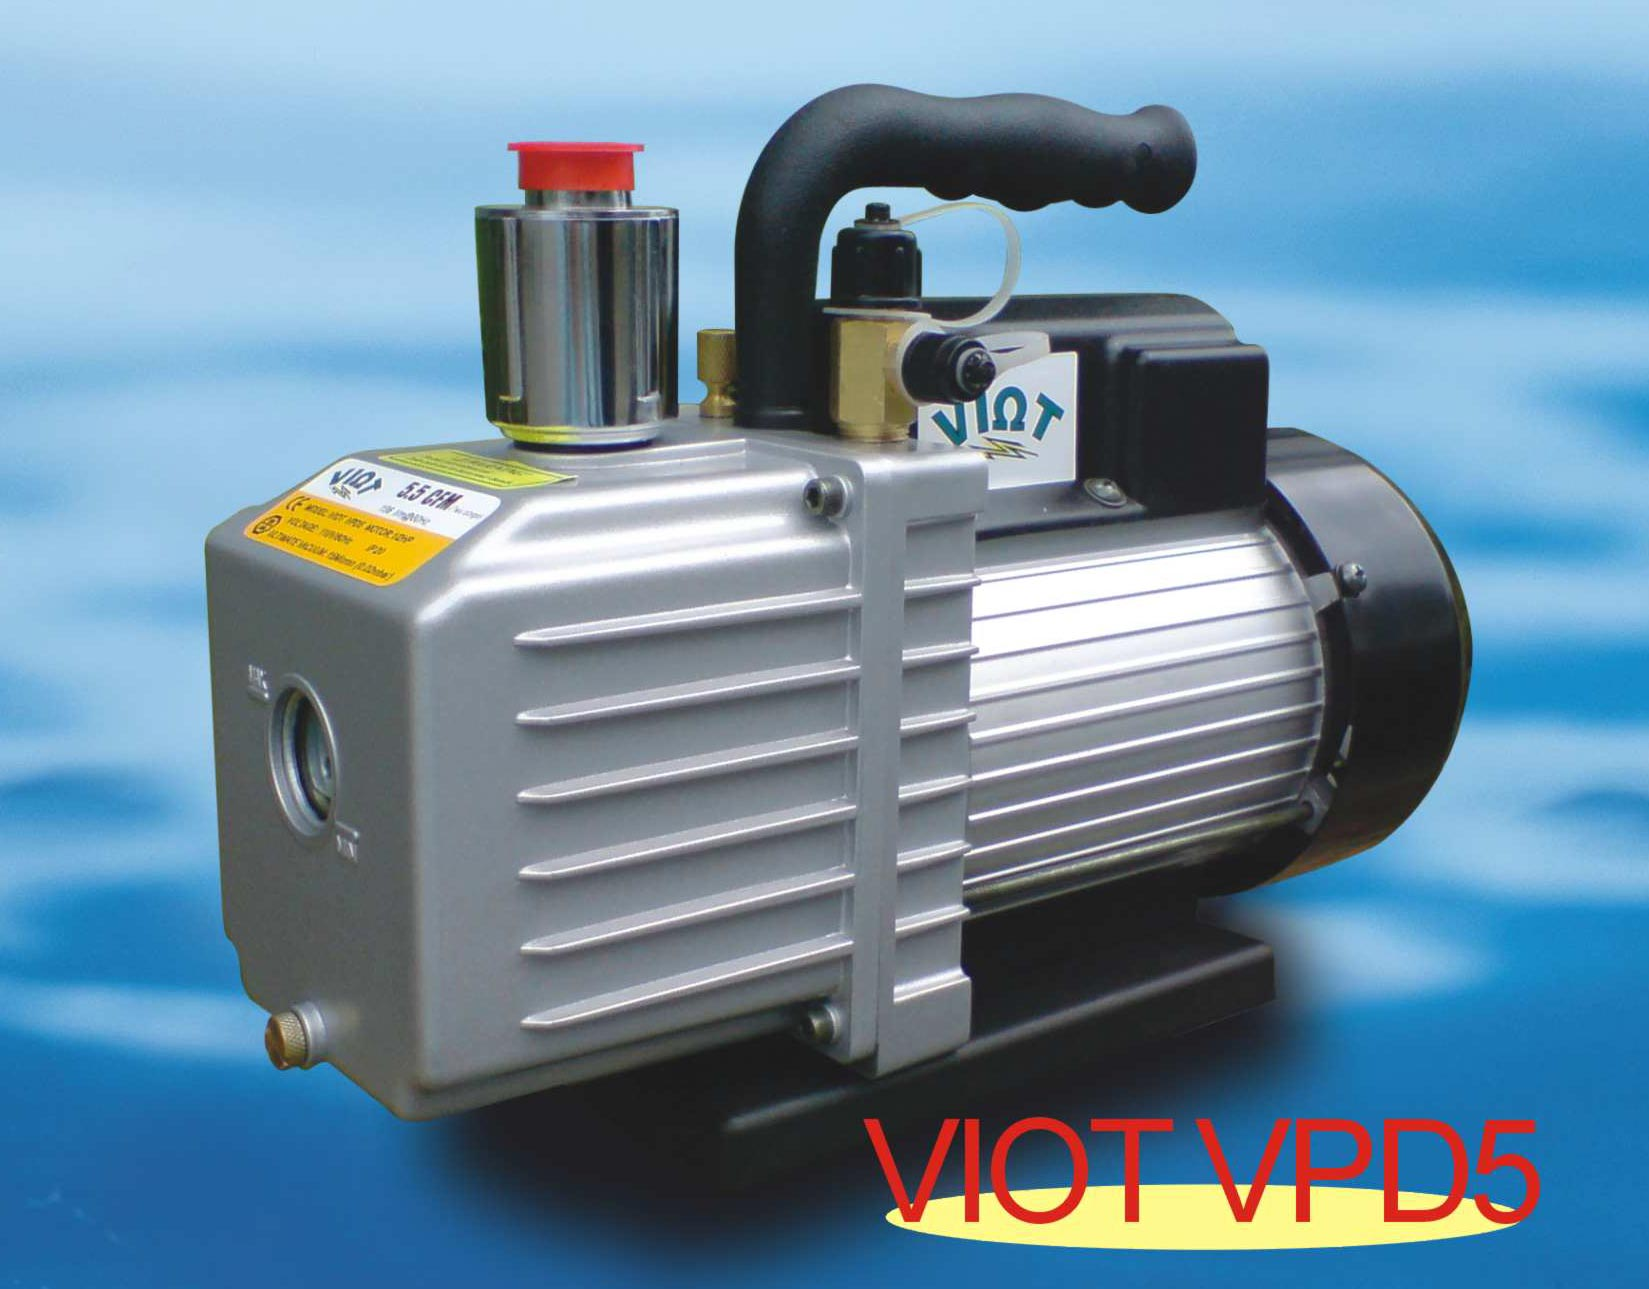 air conditioning vacuum pump. vpd5:heavy duty deep vacuum pump 5.5cfm 2-stage rotary vane epoxy resin air conditioning r